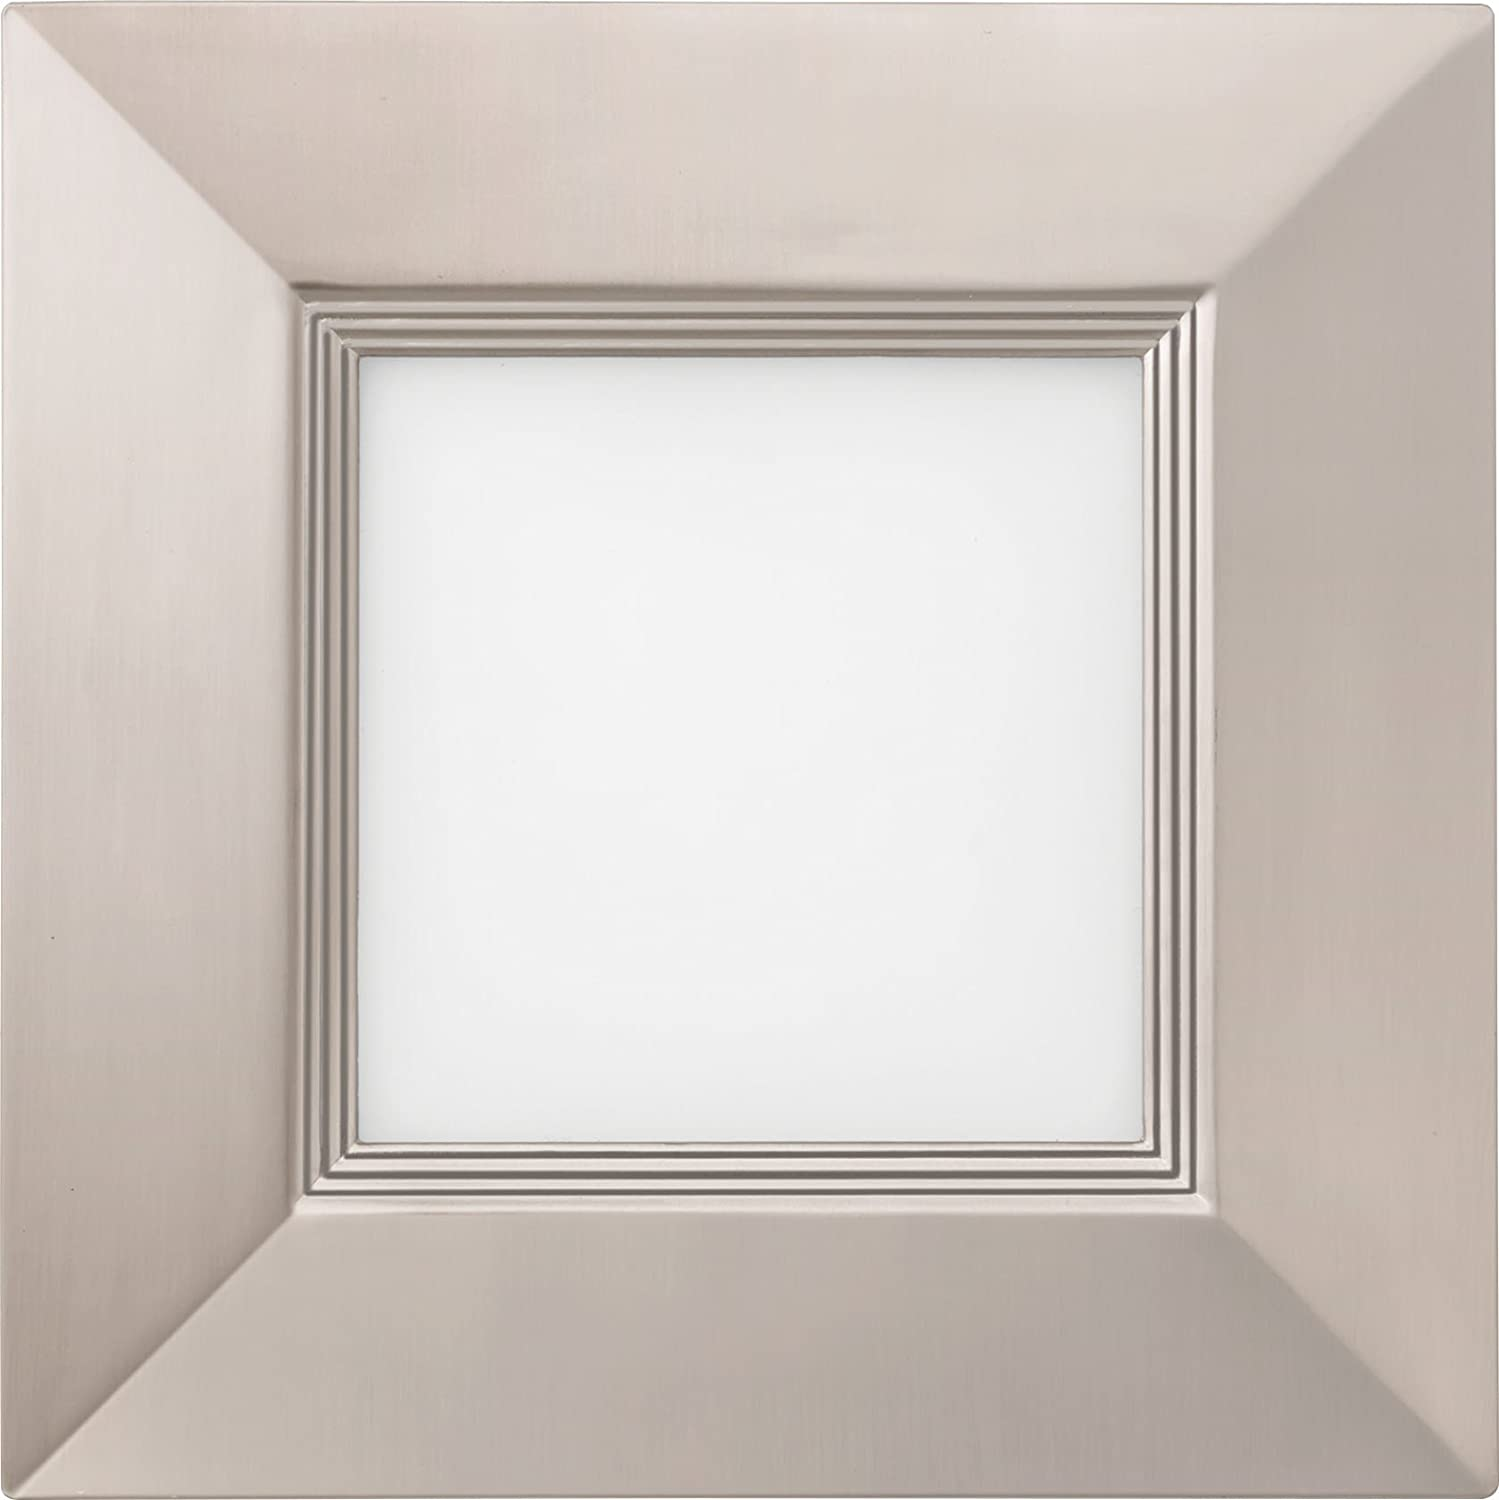 Lithonia Lighting B WF4 SQ B LED 27K BN M6 2700K 10.4W Ultra Thin Square Dimmable Recessed Ceiling Light with Baffle Trim, 4, Brushed Nickel 4